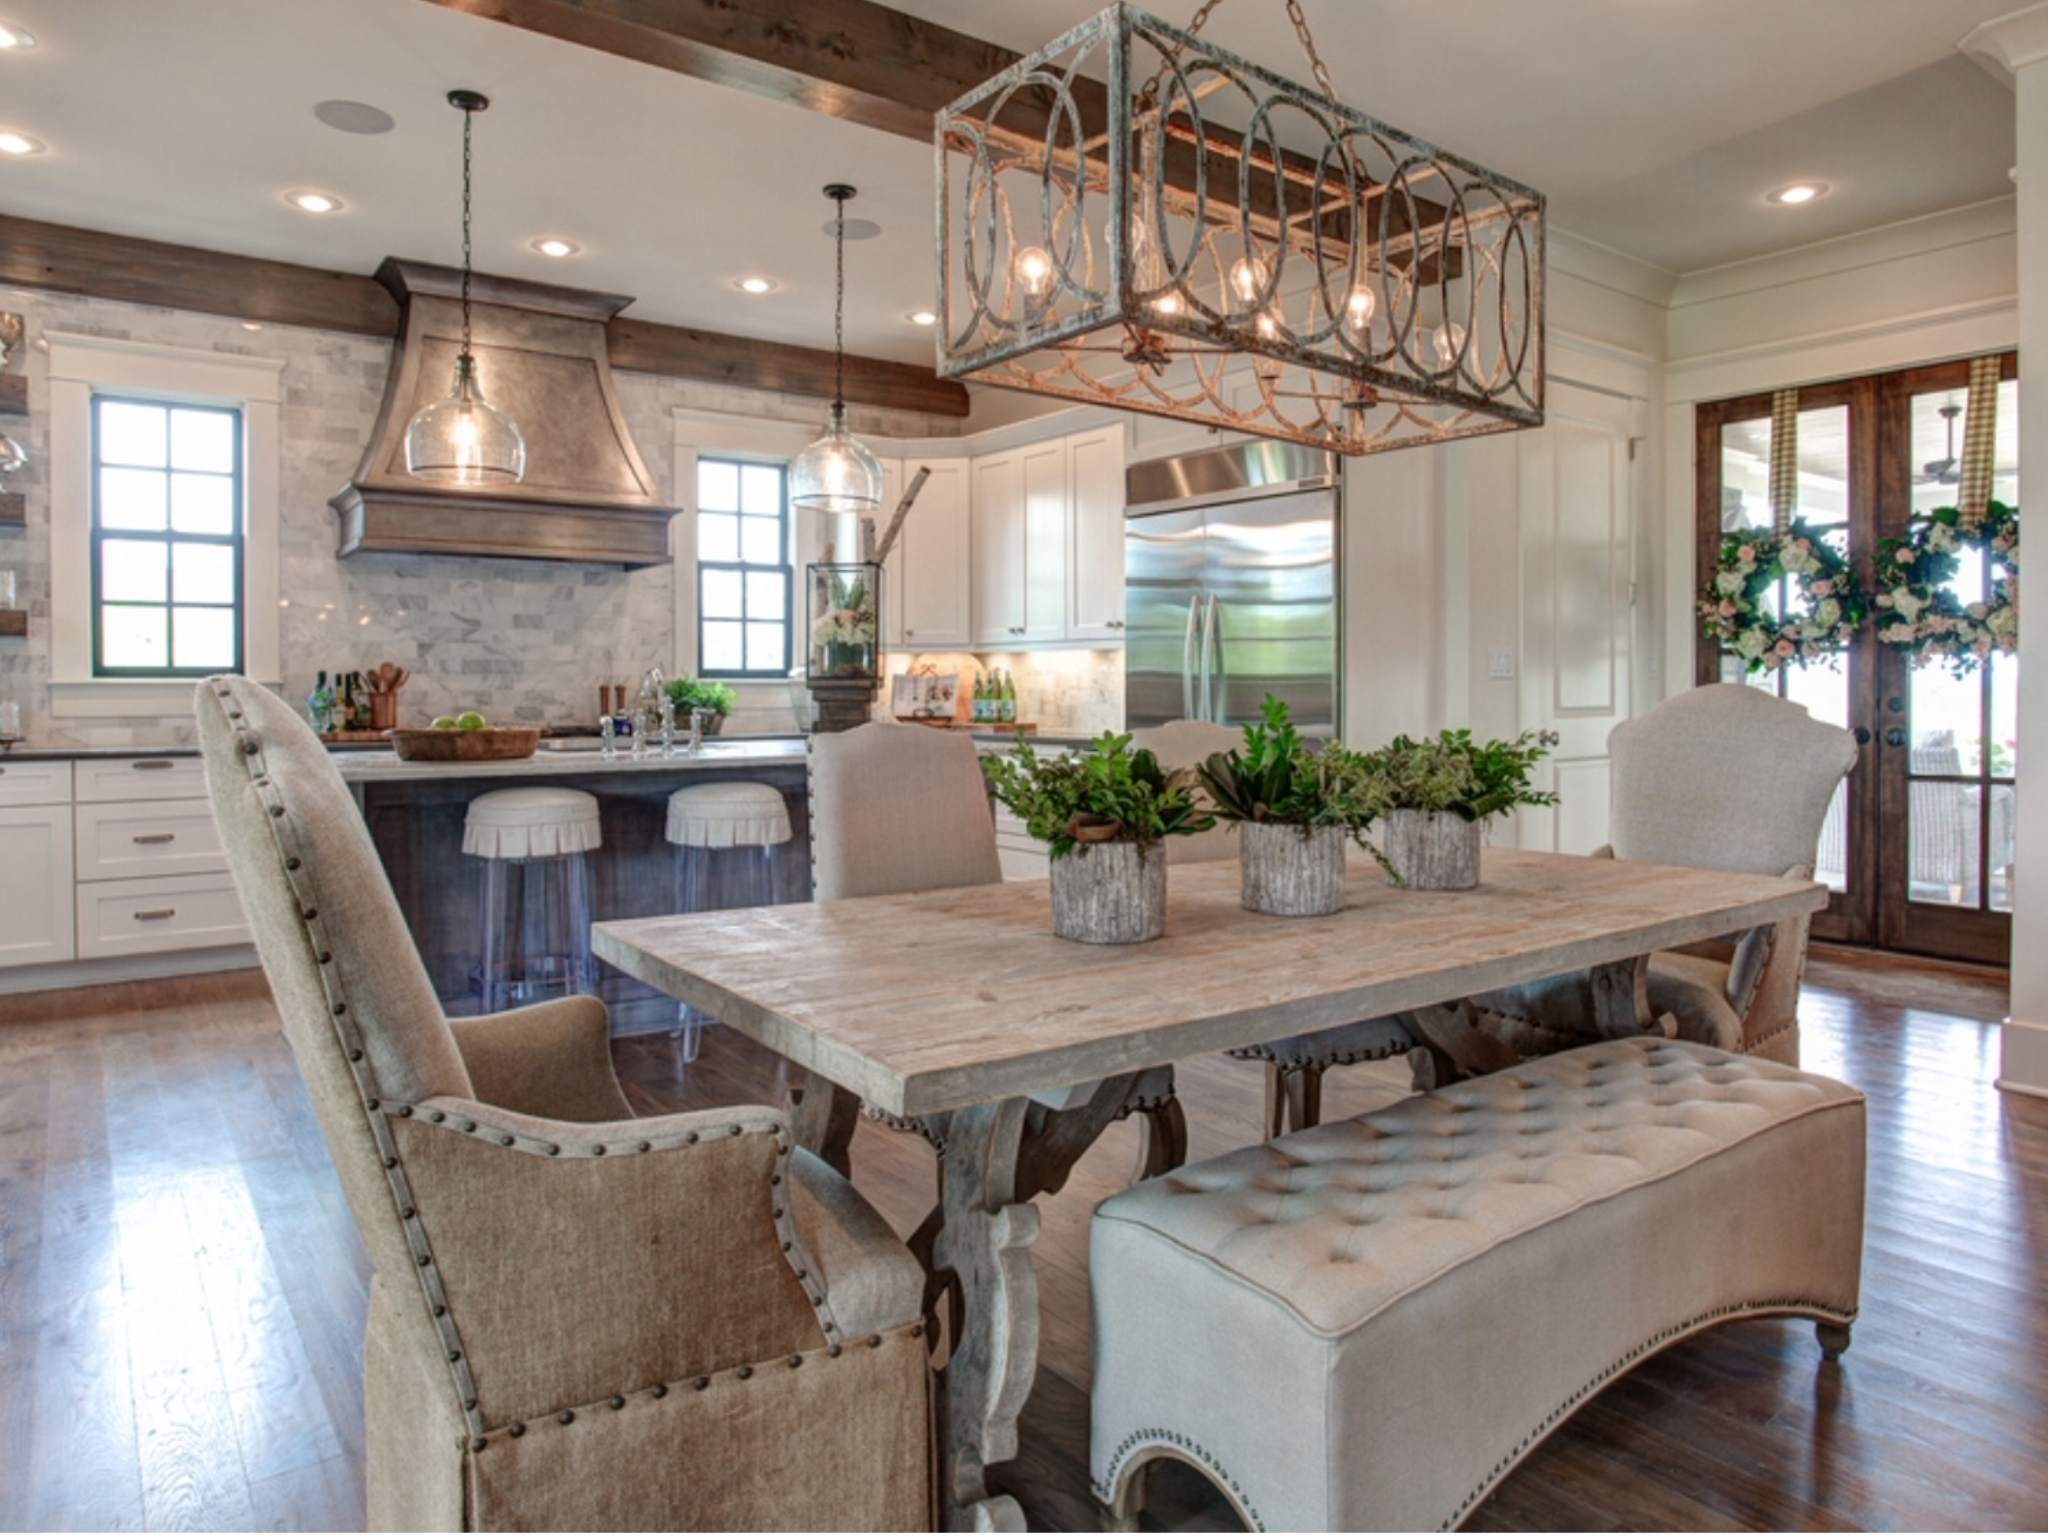 Pin By Catherine Sanicki On Breakfast Nook Casual Dining Country Kitchen Designs Home Country Living Room